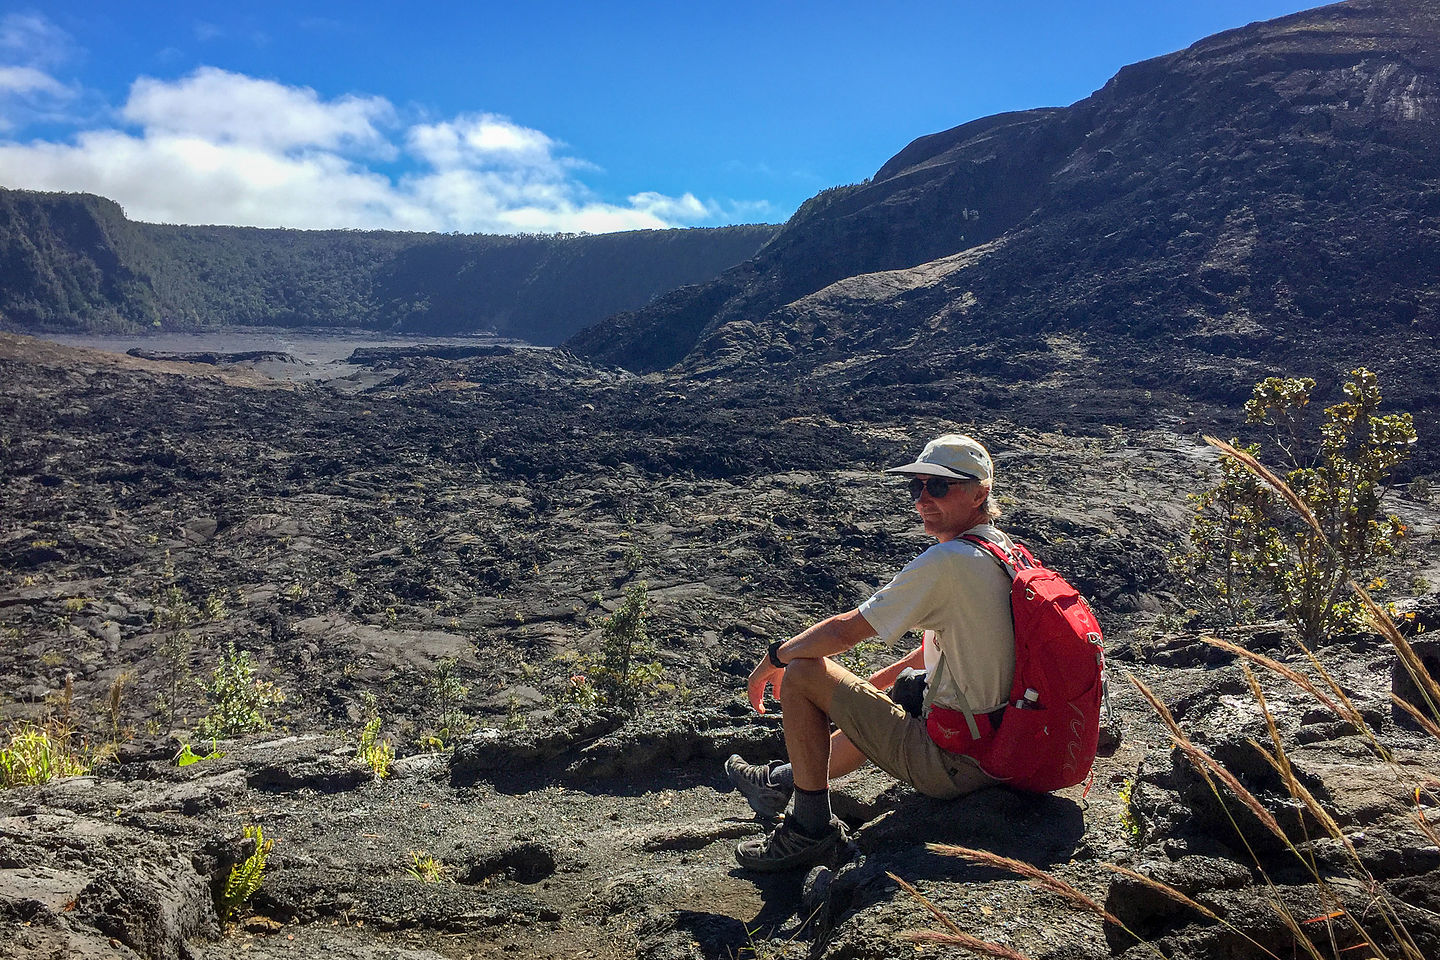 Herb getting ready to descend into Kilauea Iki Crater